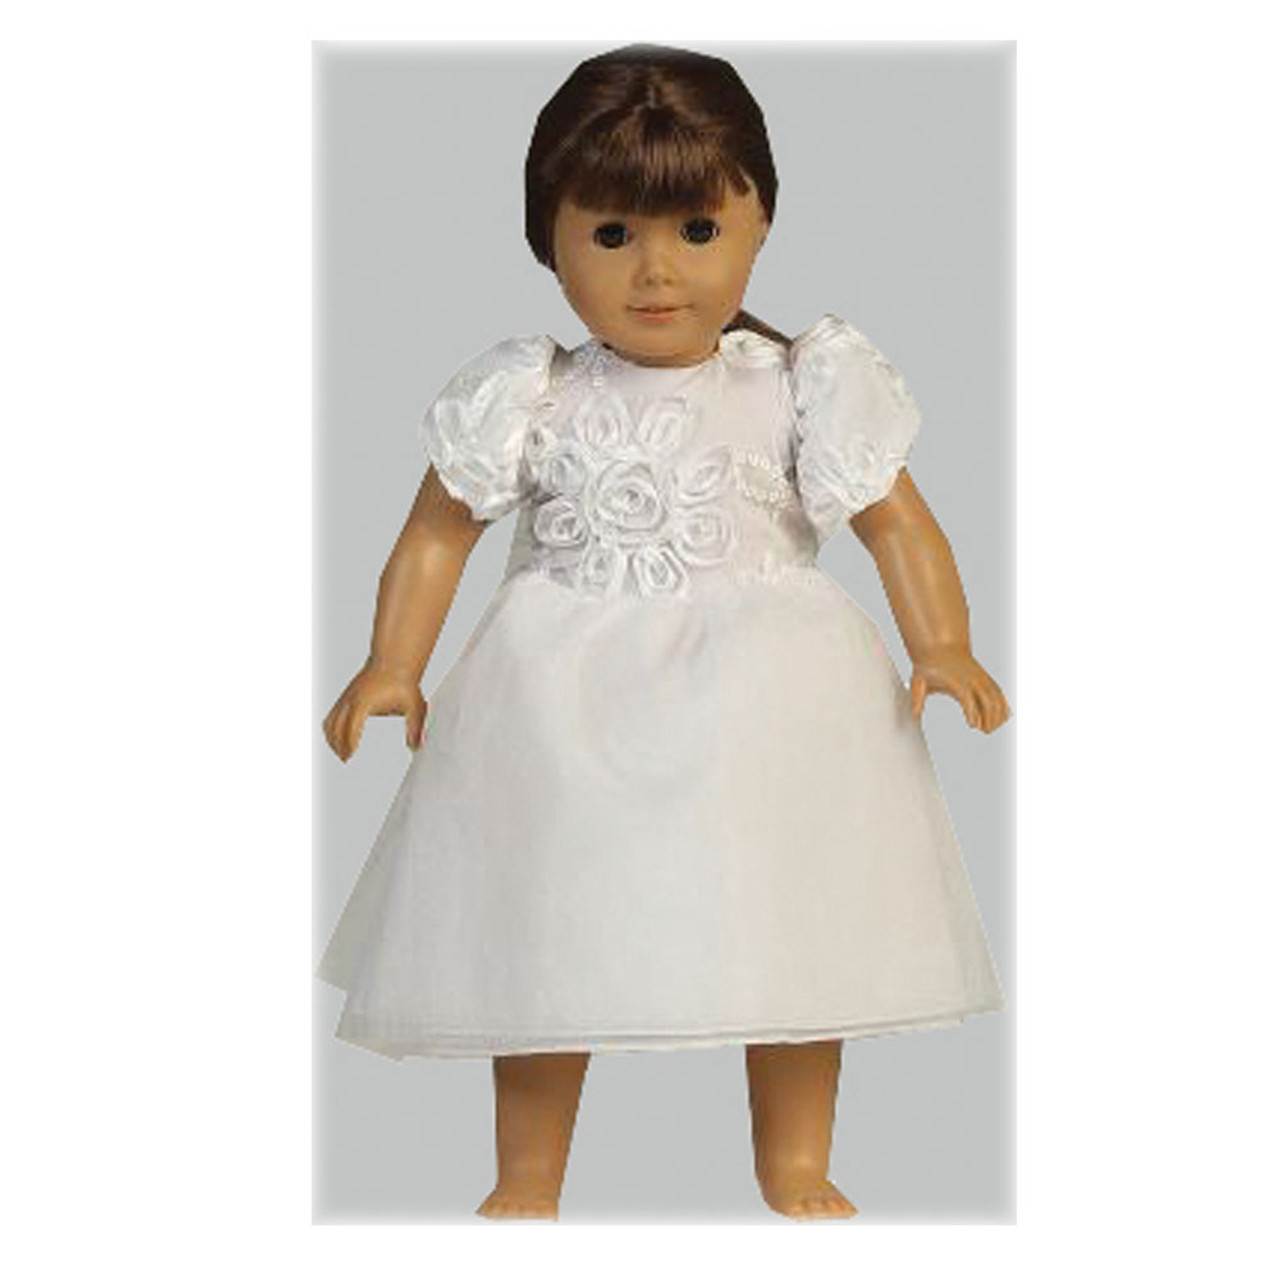 Doll Dress Matches Madison for 18IN Doll (Doll Not Included)